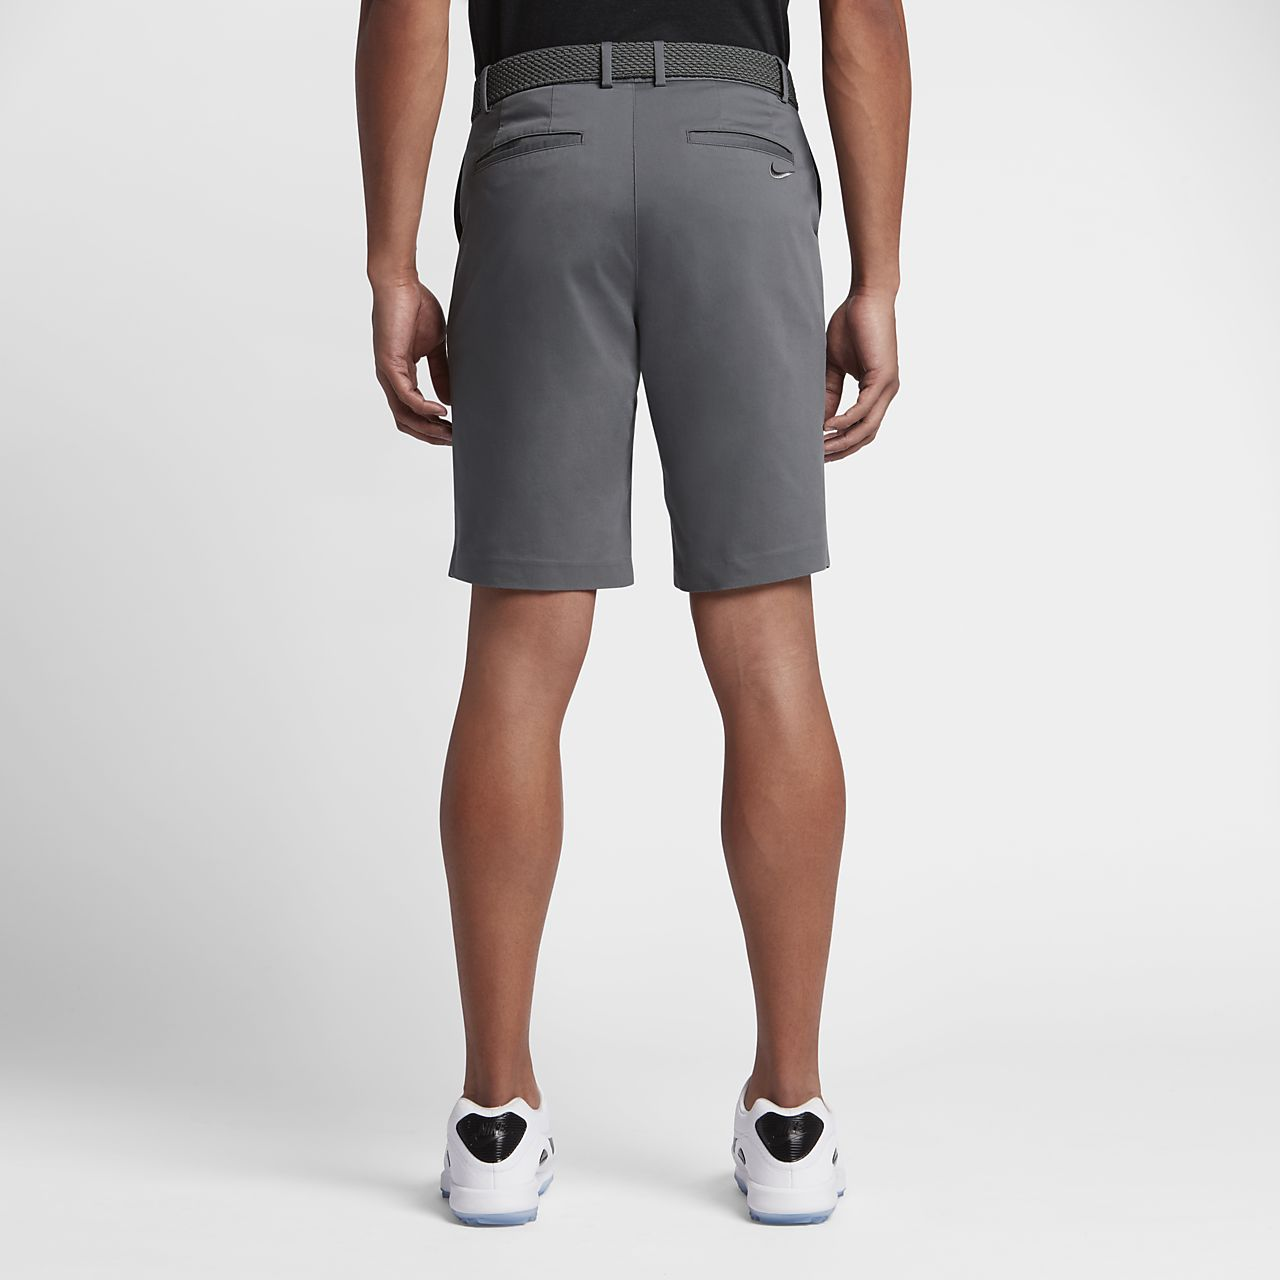 853b9fb7e030 Nike Flex Short Slim Washed Men s Golf Shorts. Nike.com VN